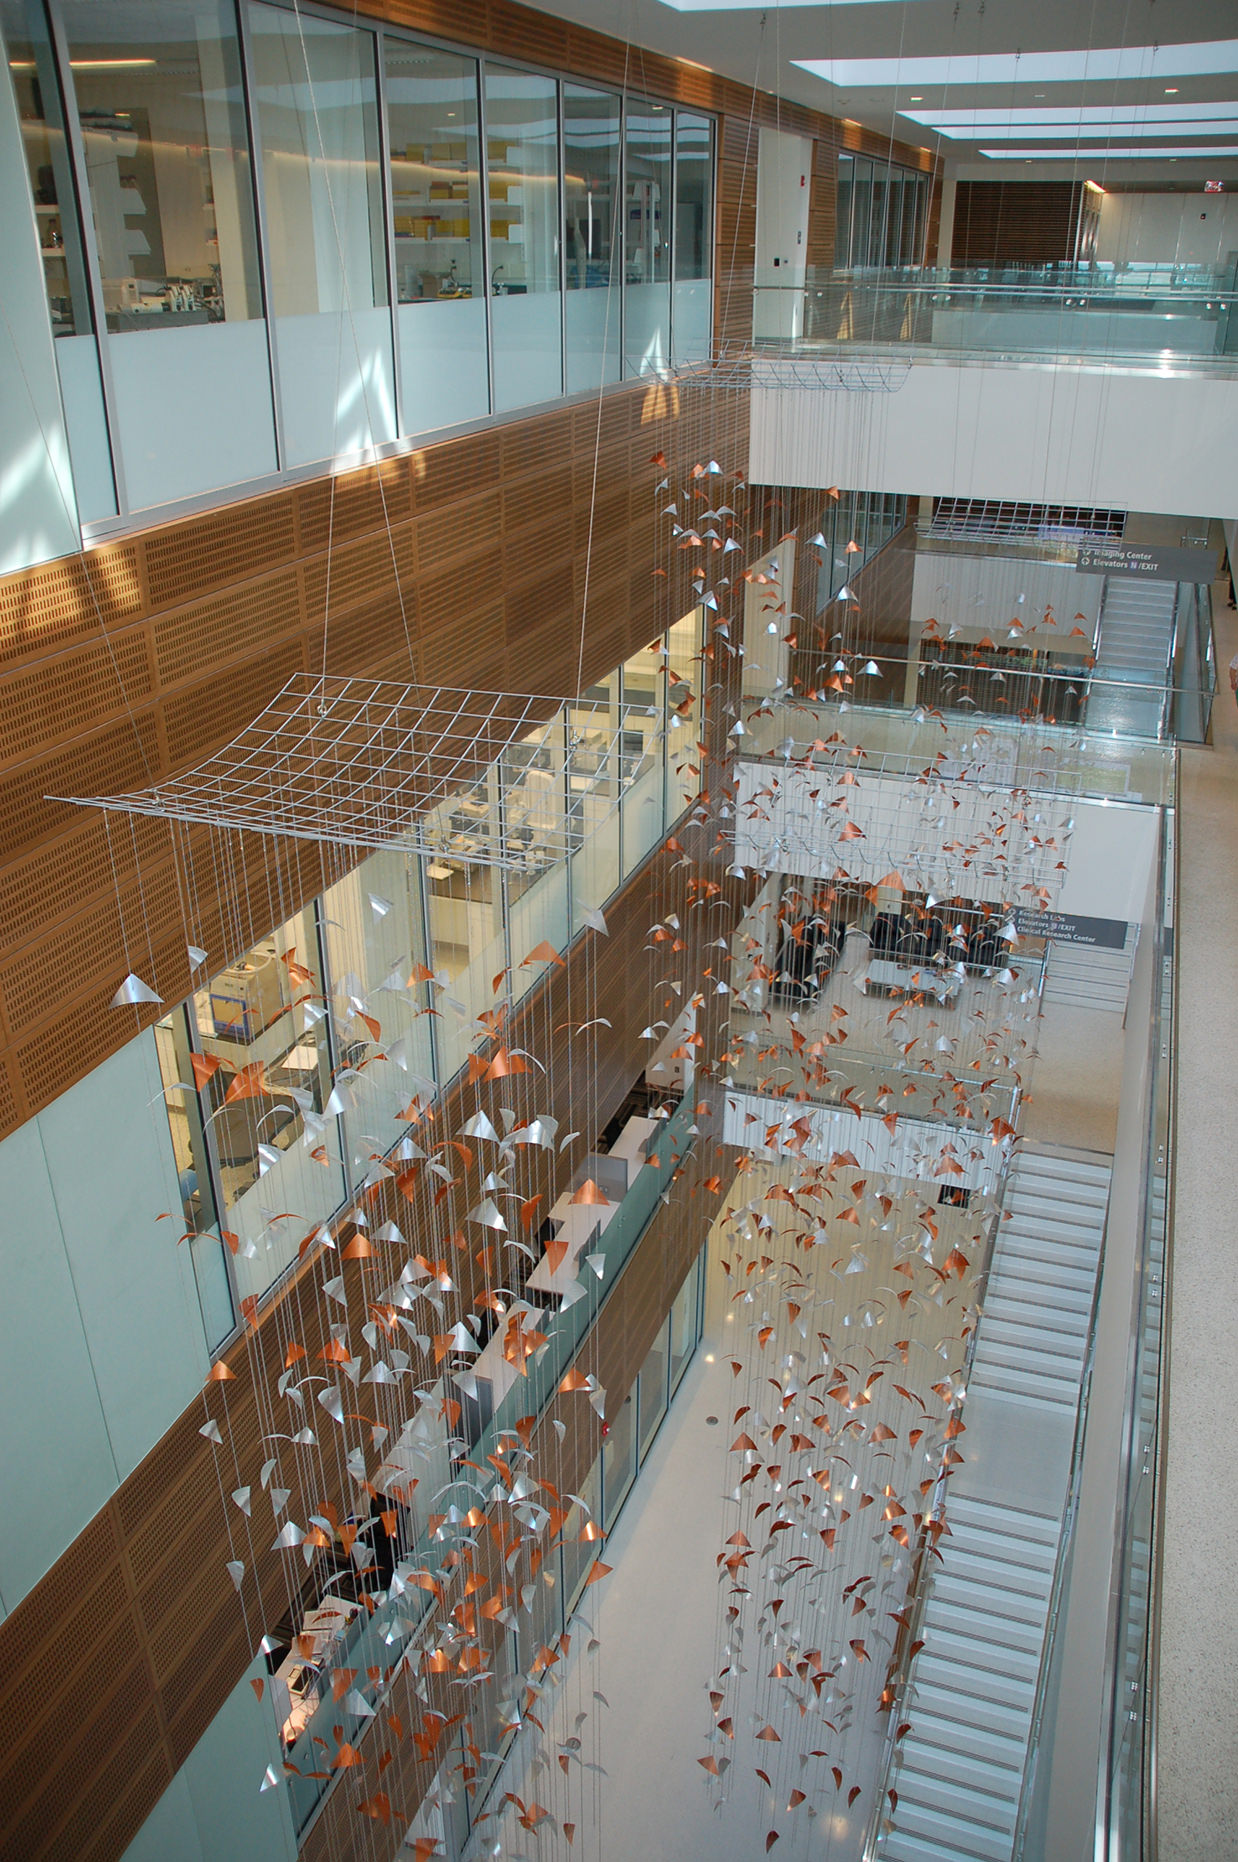 Suspension grids for Talley Fisher's Primordium, Clinical and Translational Research Center, University of Buffalo,